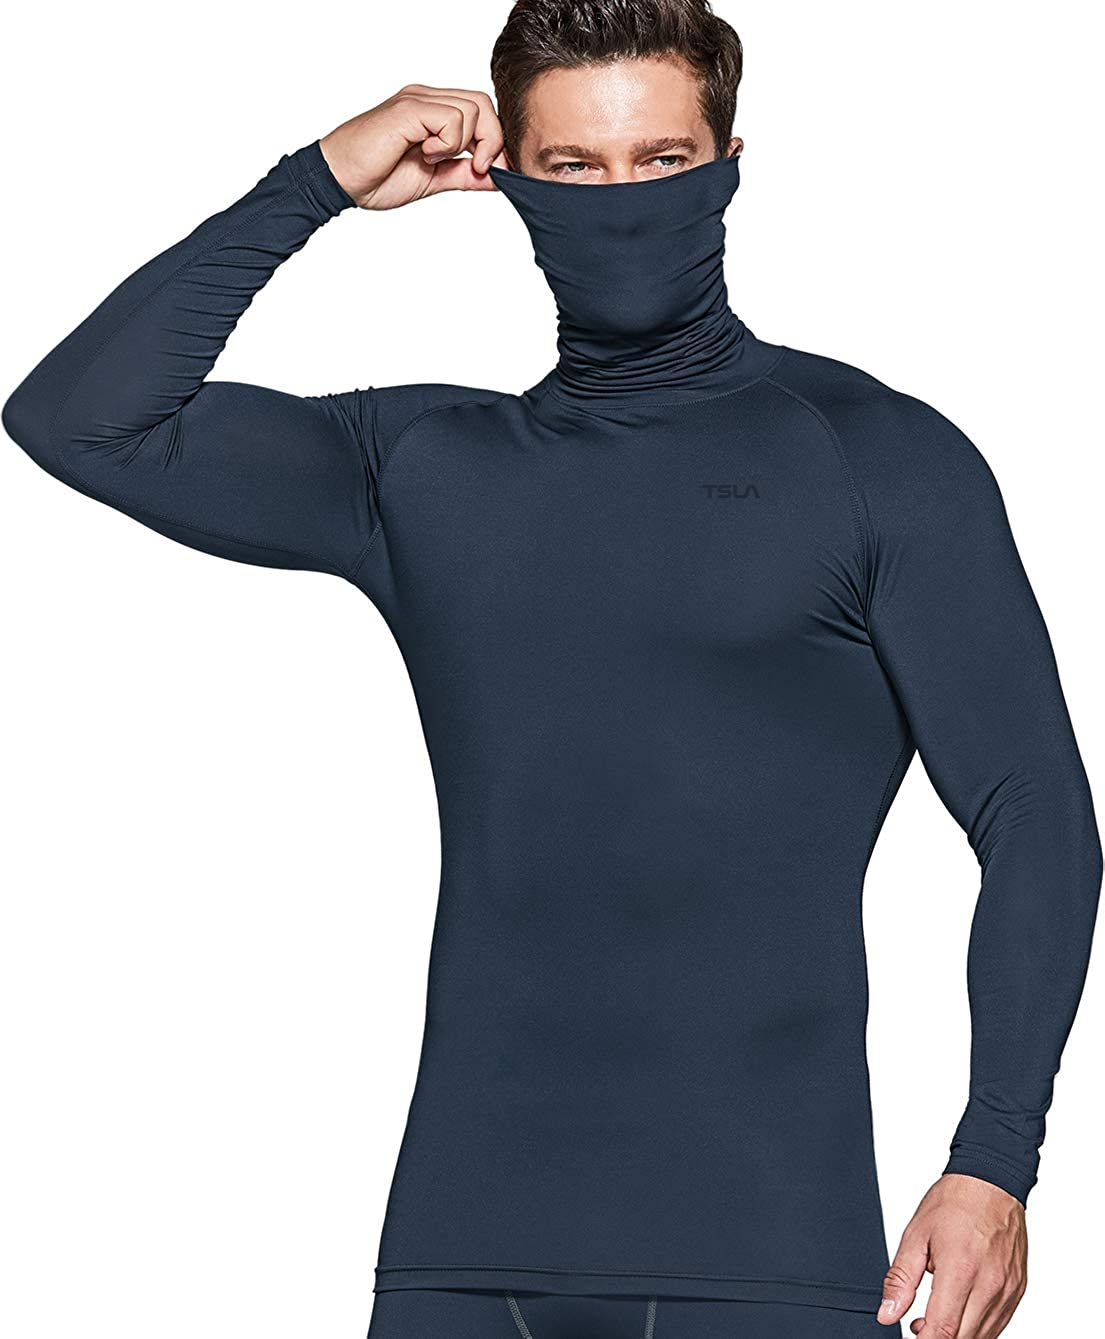 TSLA Men's Cool Dry Fit Mock Long Sleeve Compression Shirts, Athletic Workout Shirt, Active Sports Base Layer T-Shirt